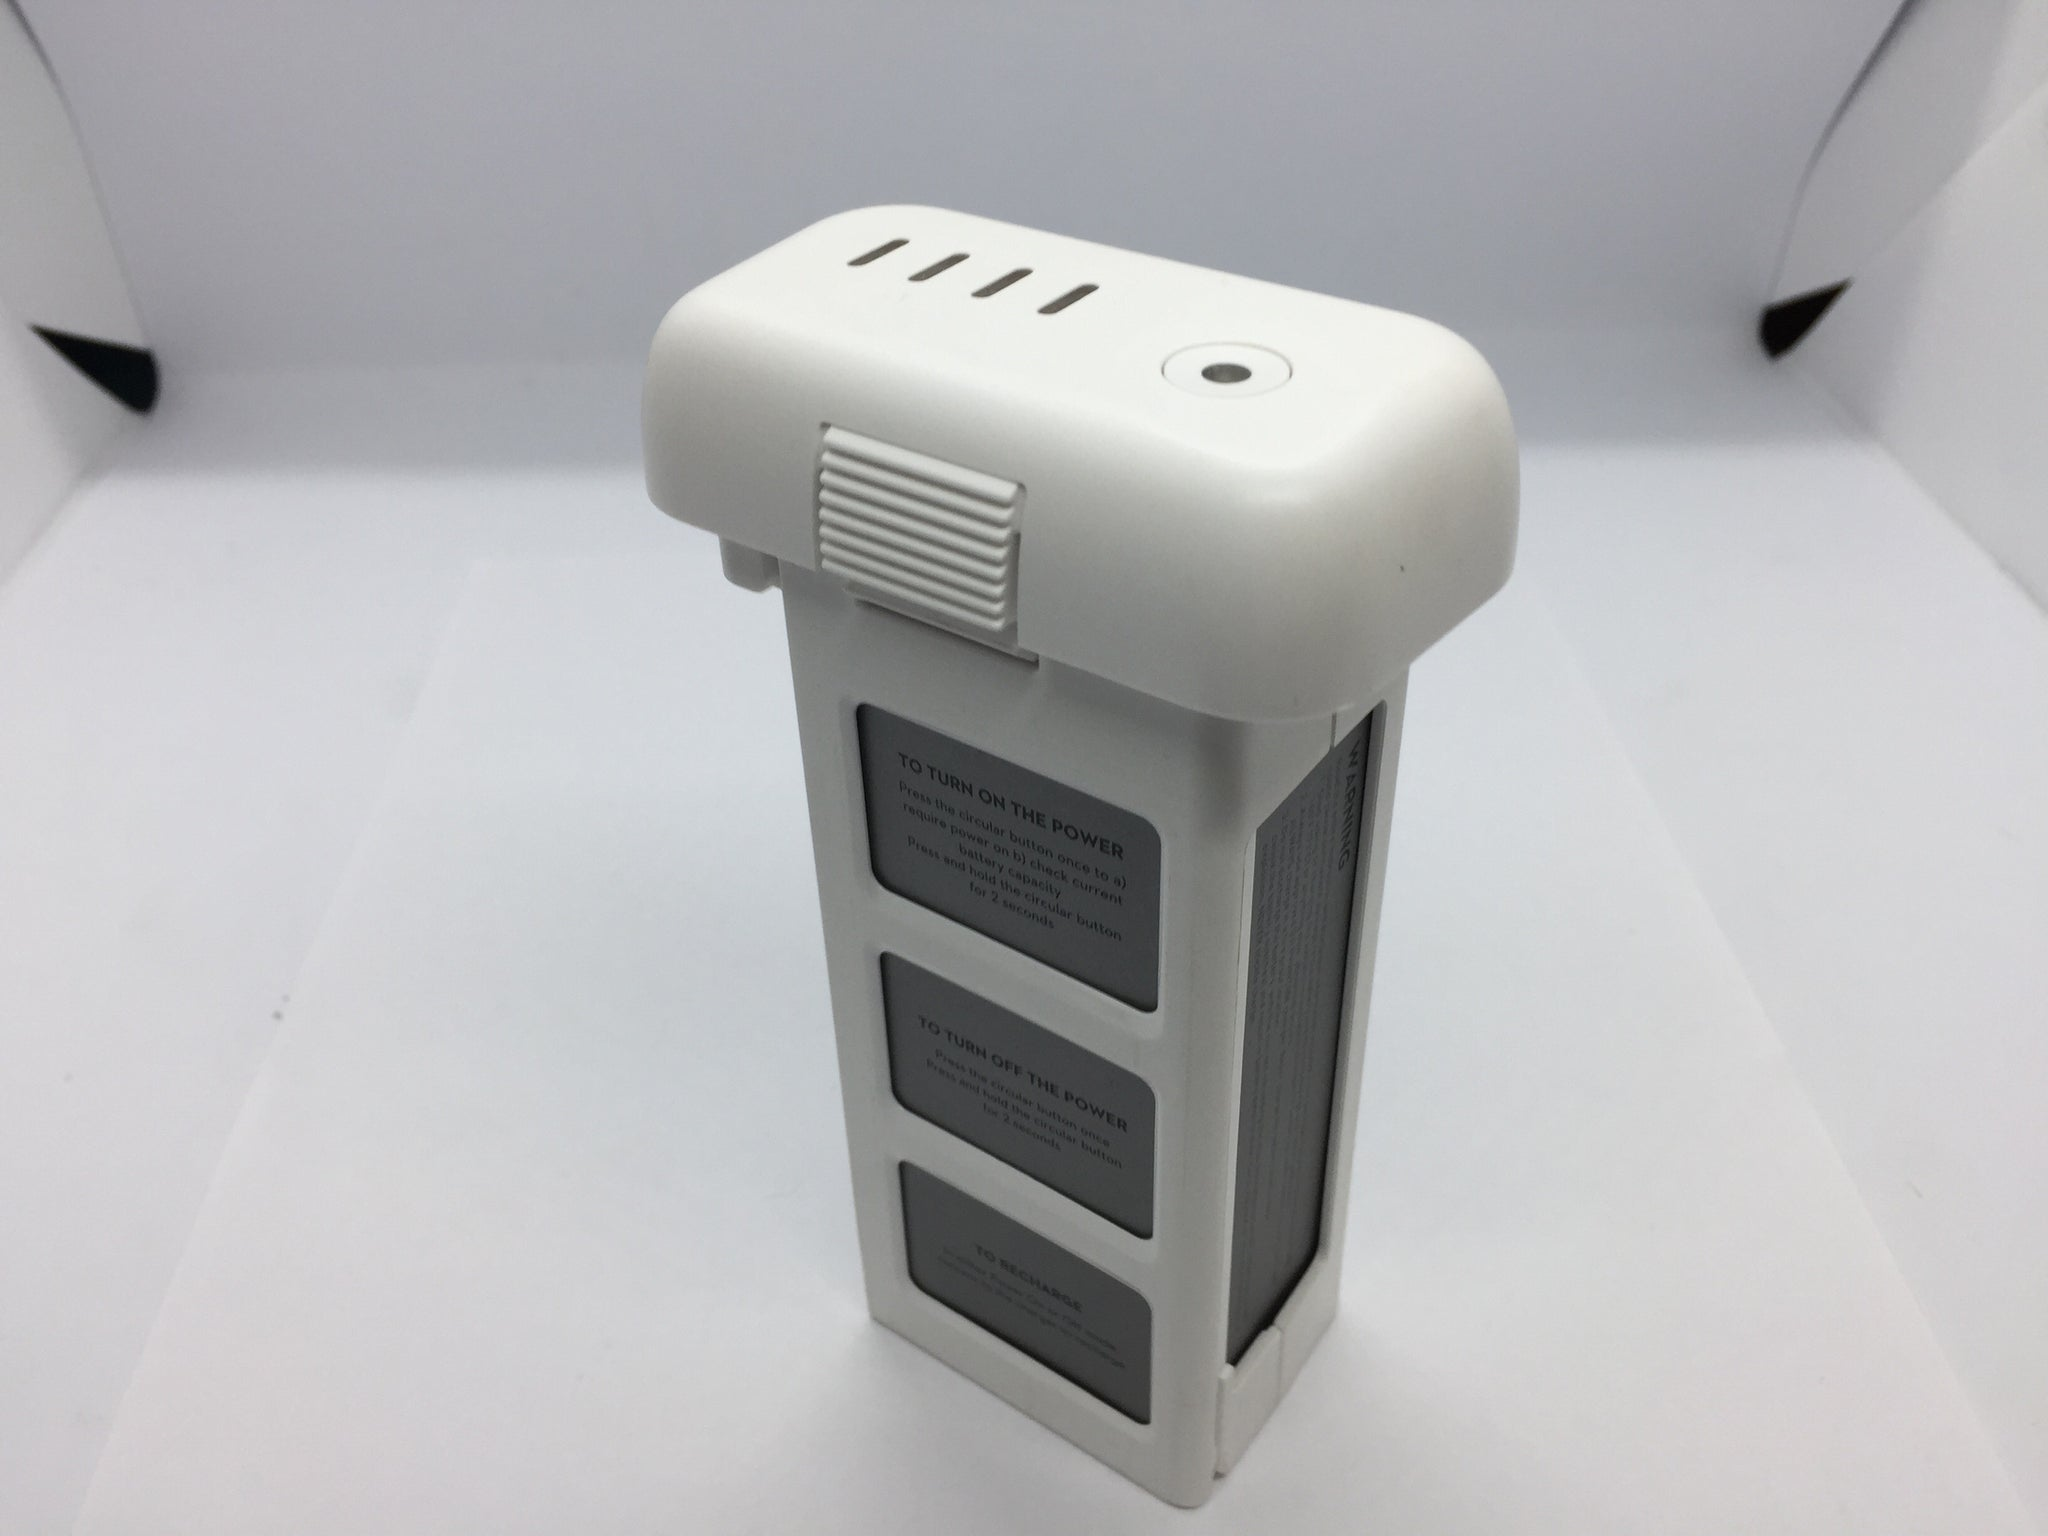 DJI Phantom 3 Battery USED